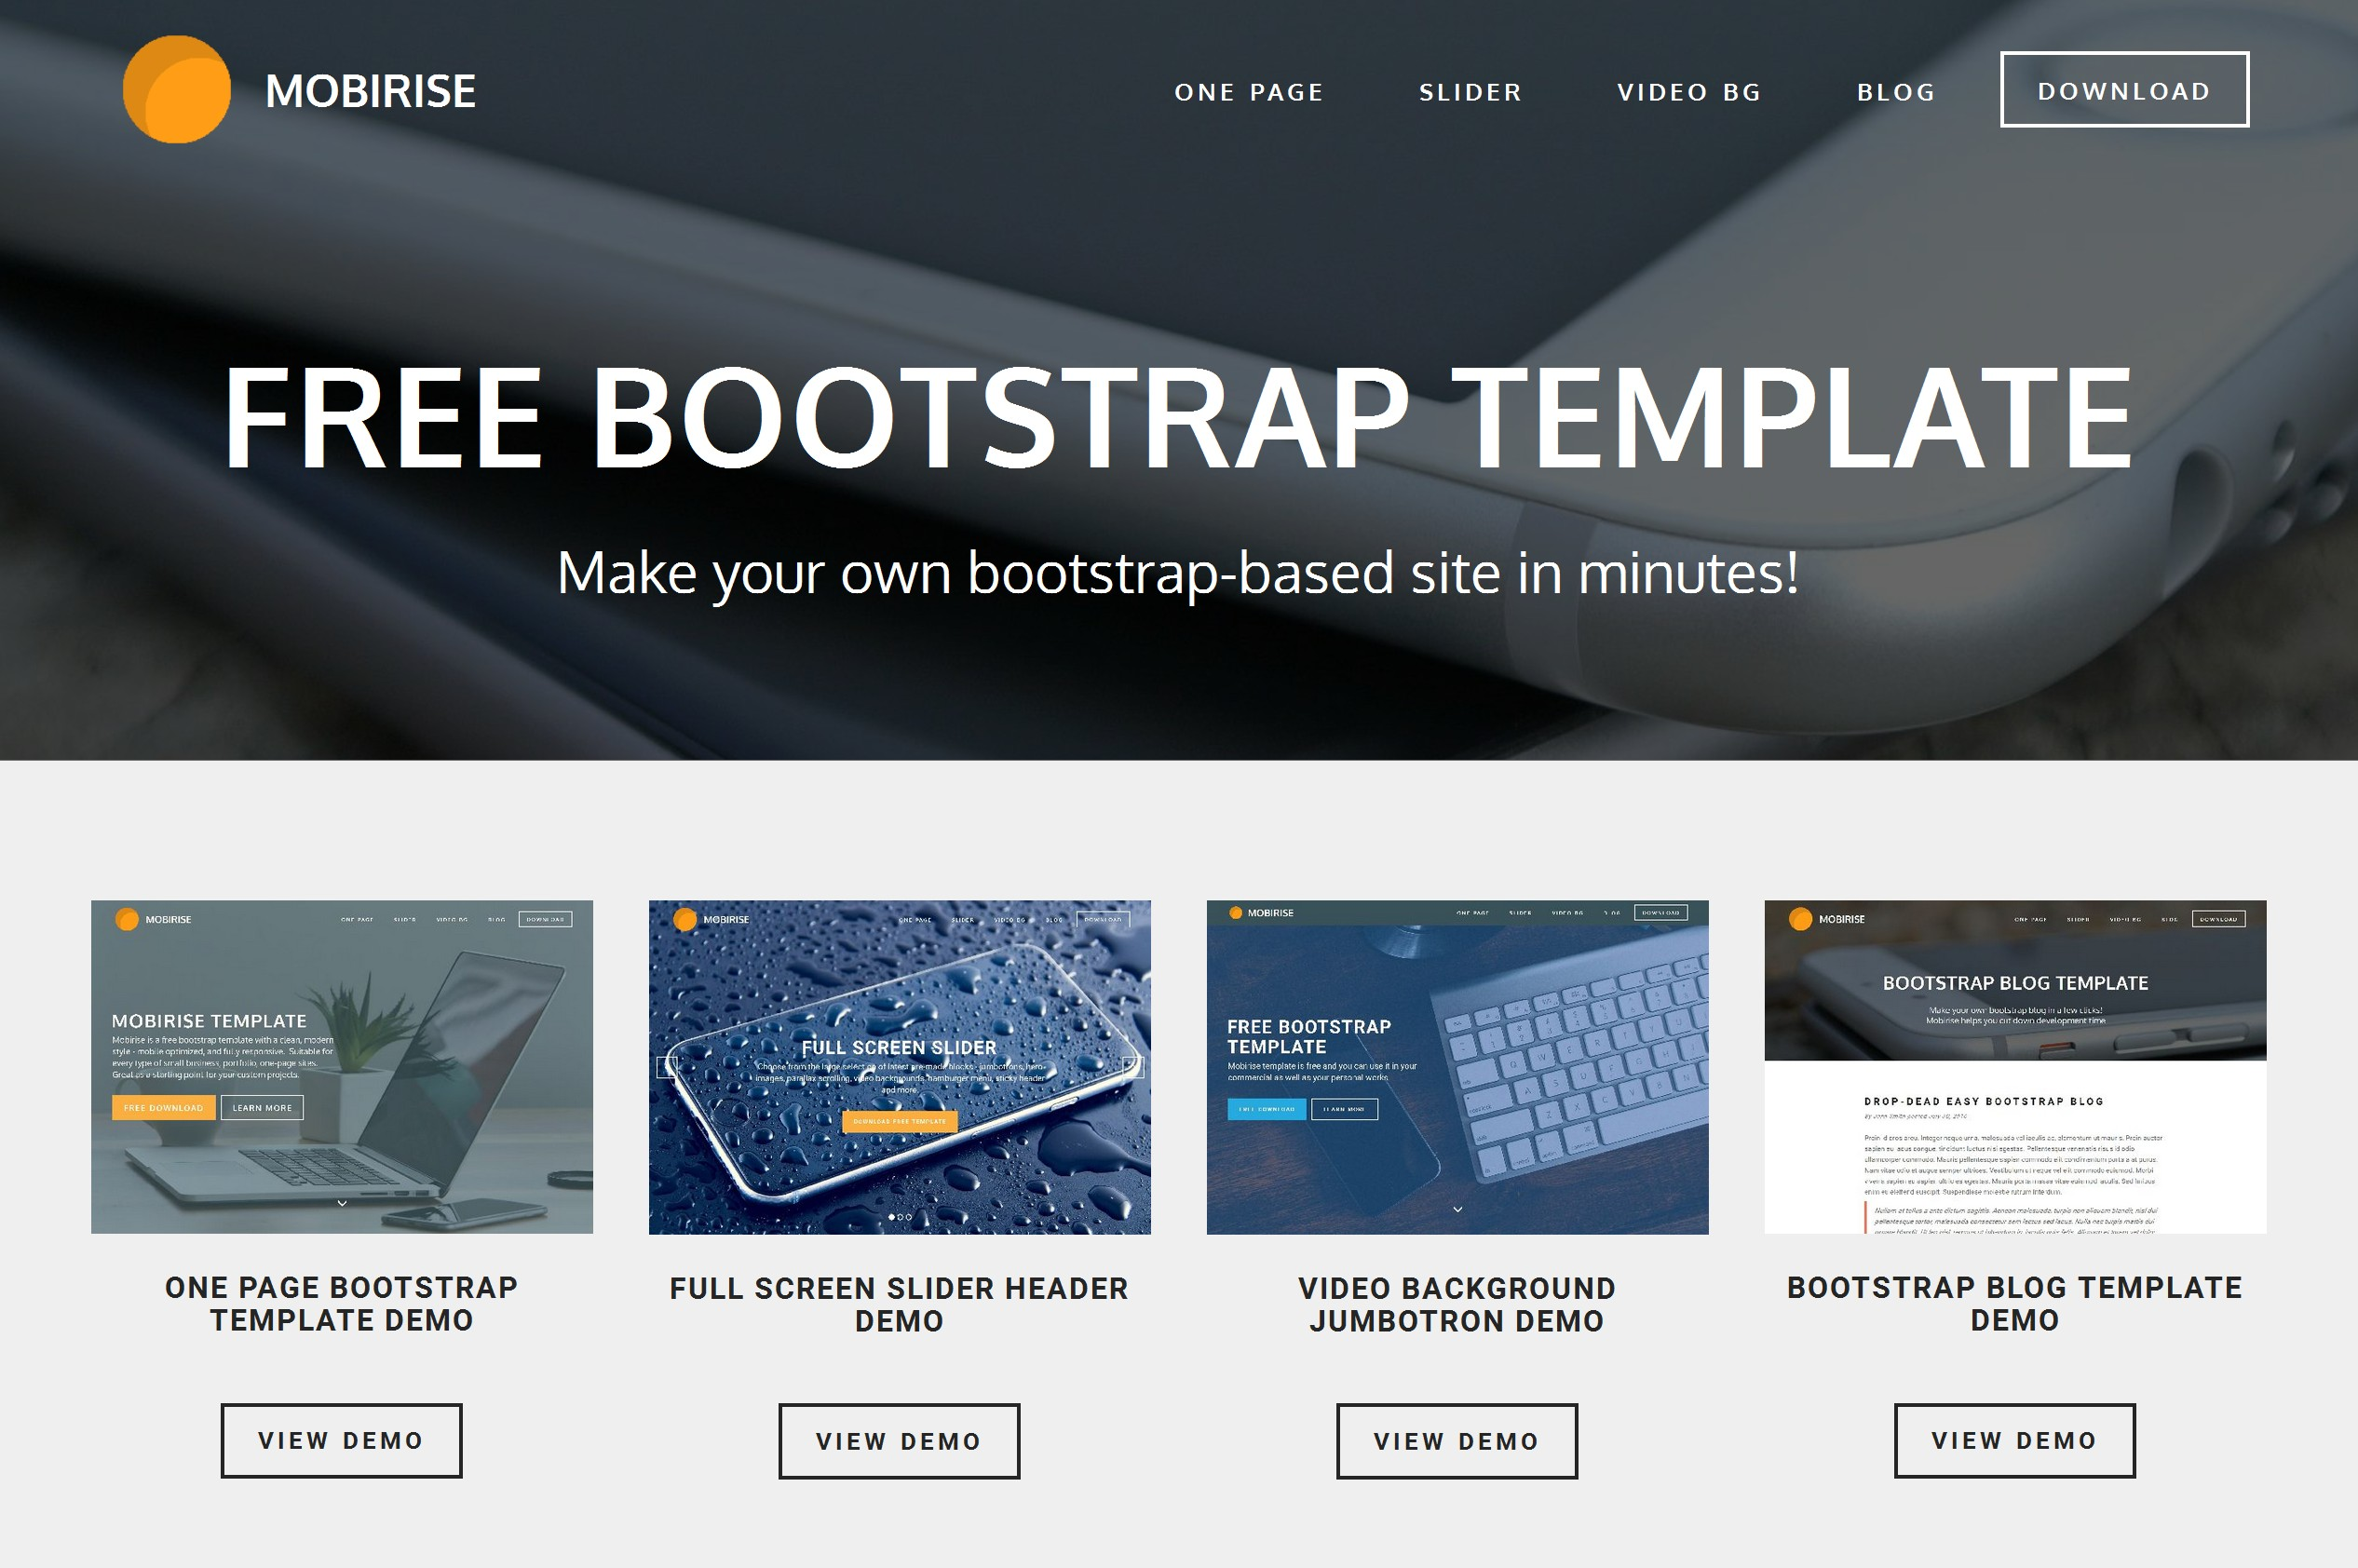 how to use bootstrap templates - free bootstrap template for mobile friendly websites